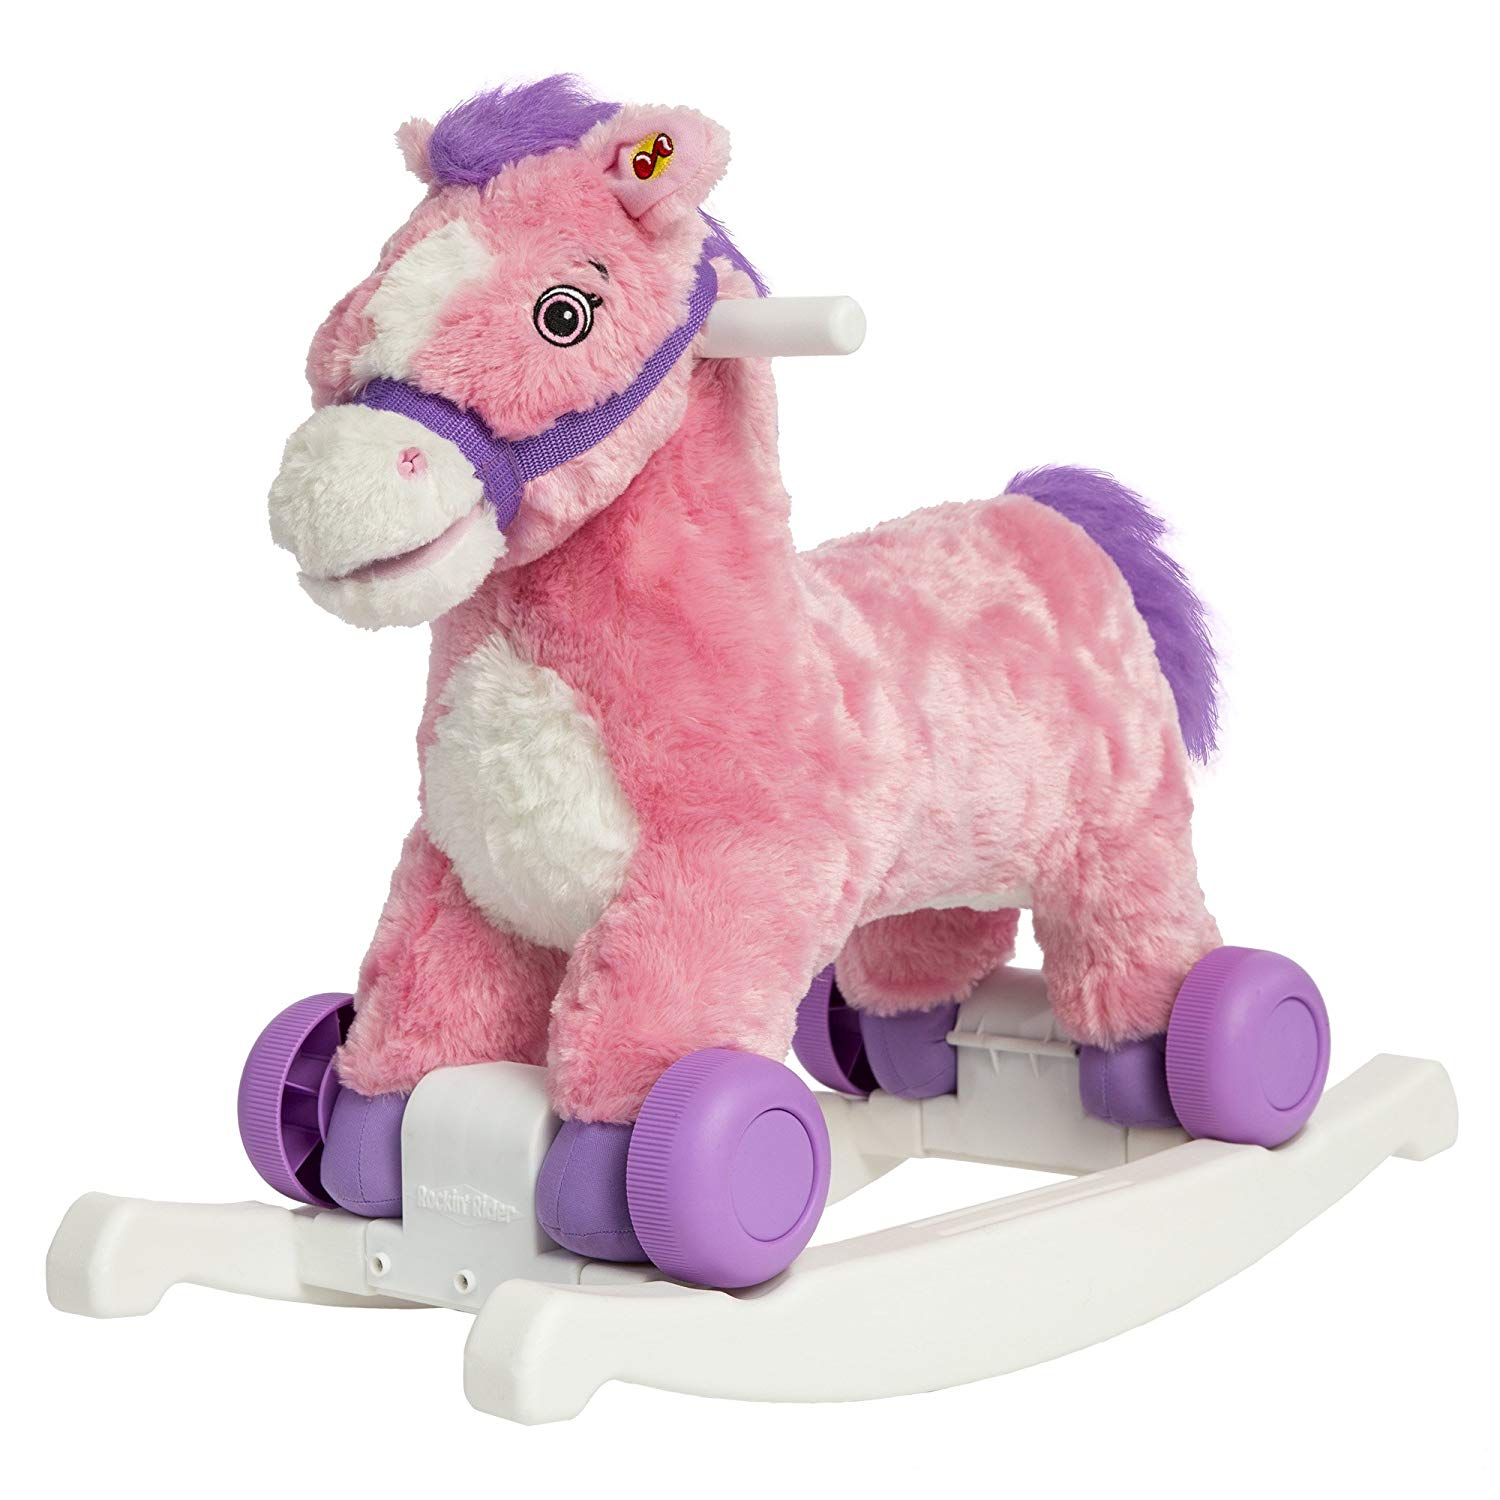 Top 10 best rocking horse in 2018 reviews - Top Best Pro Reviews